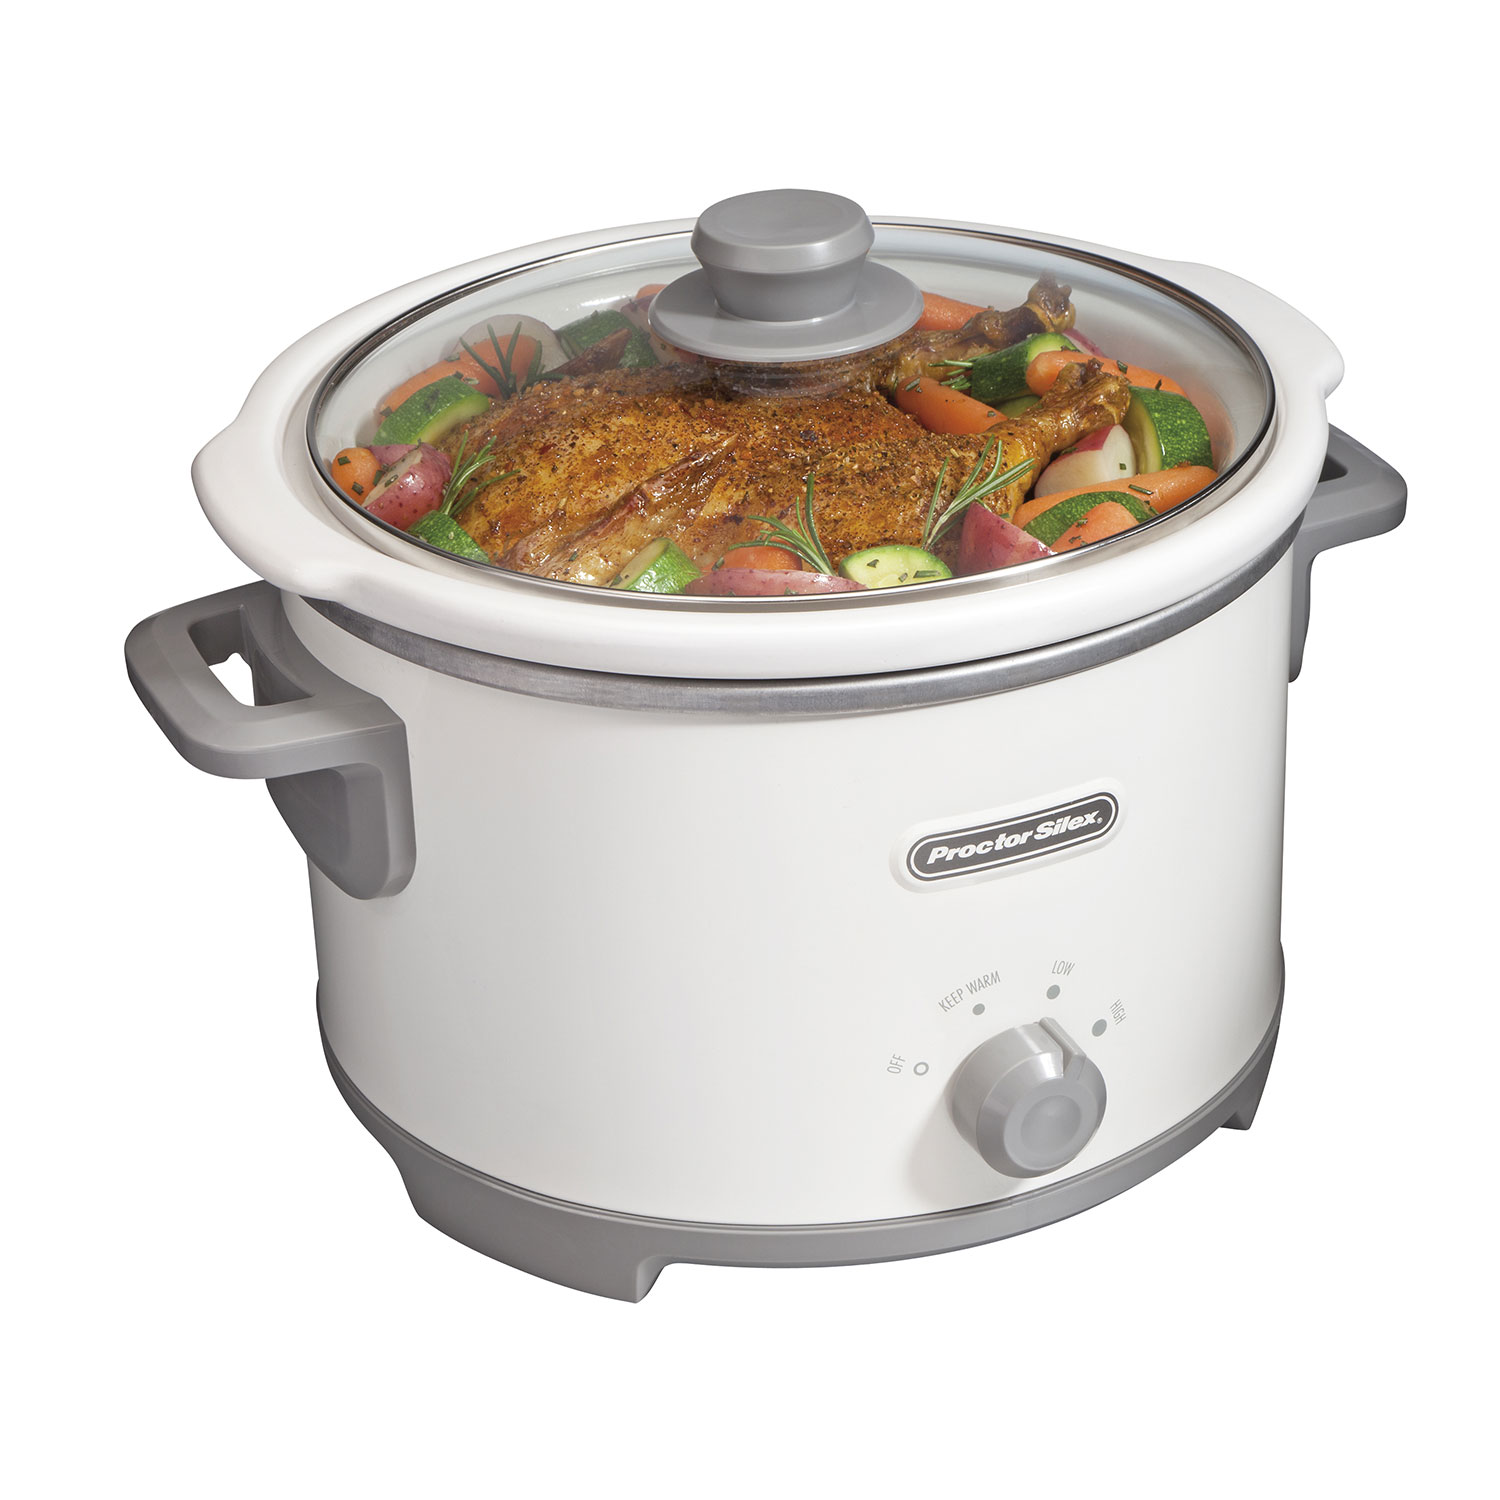 4 Quart Slow Cooker (white)